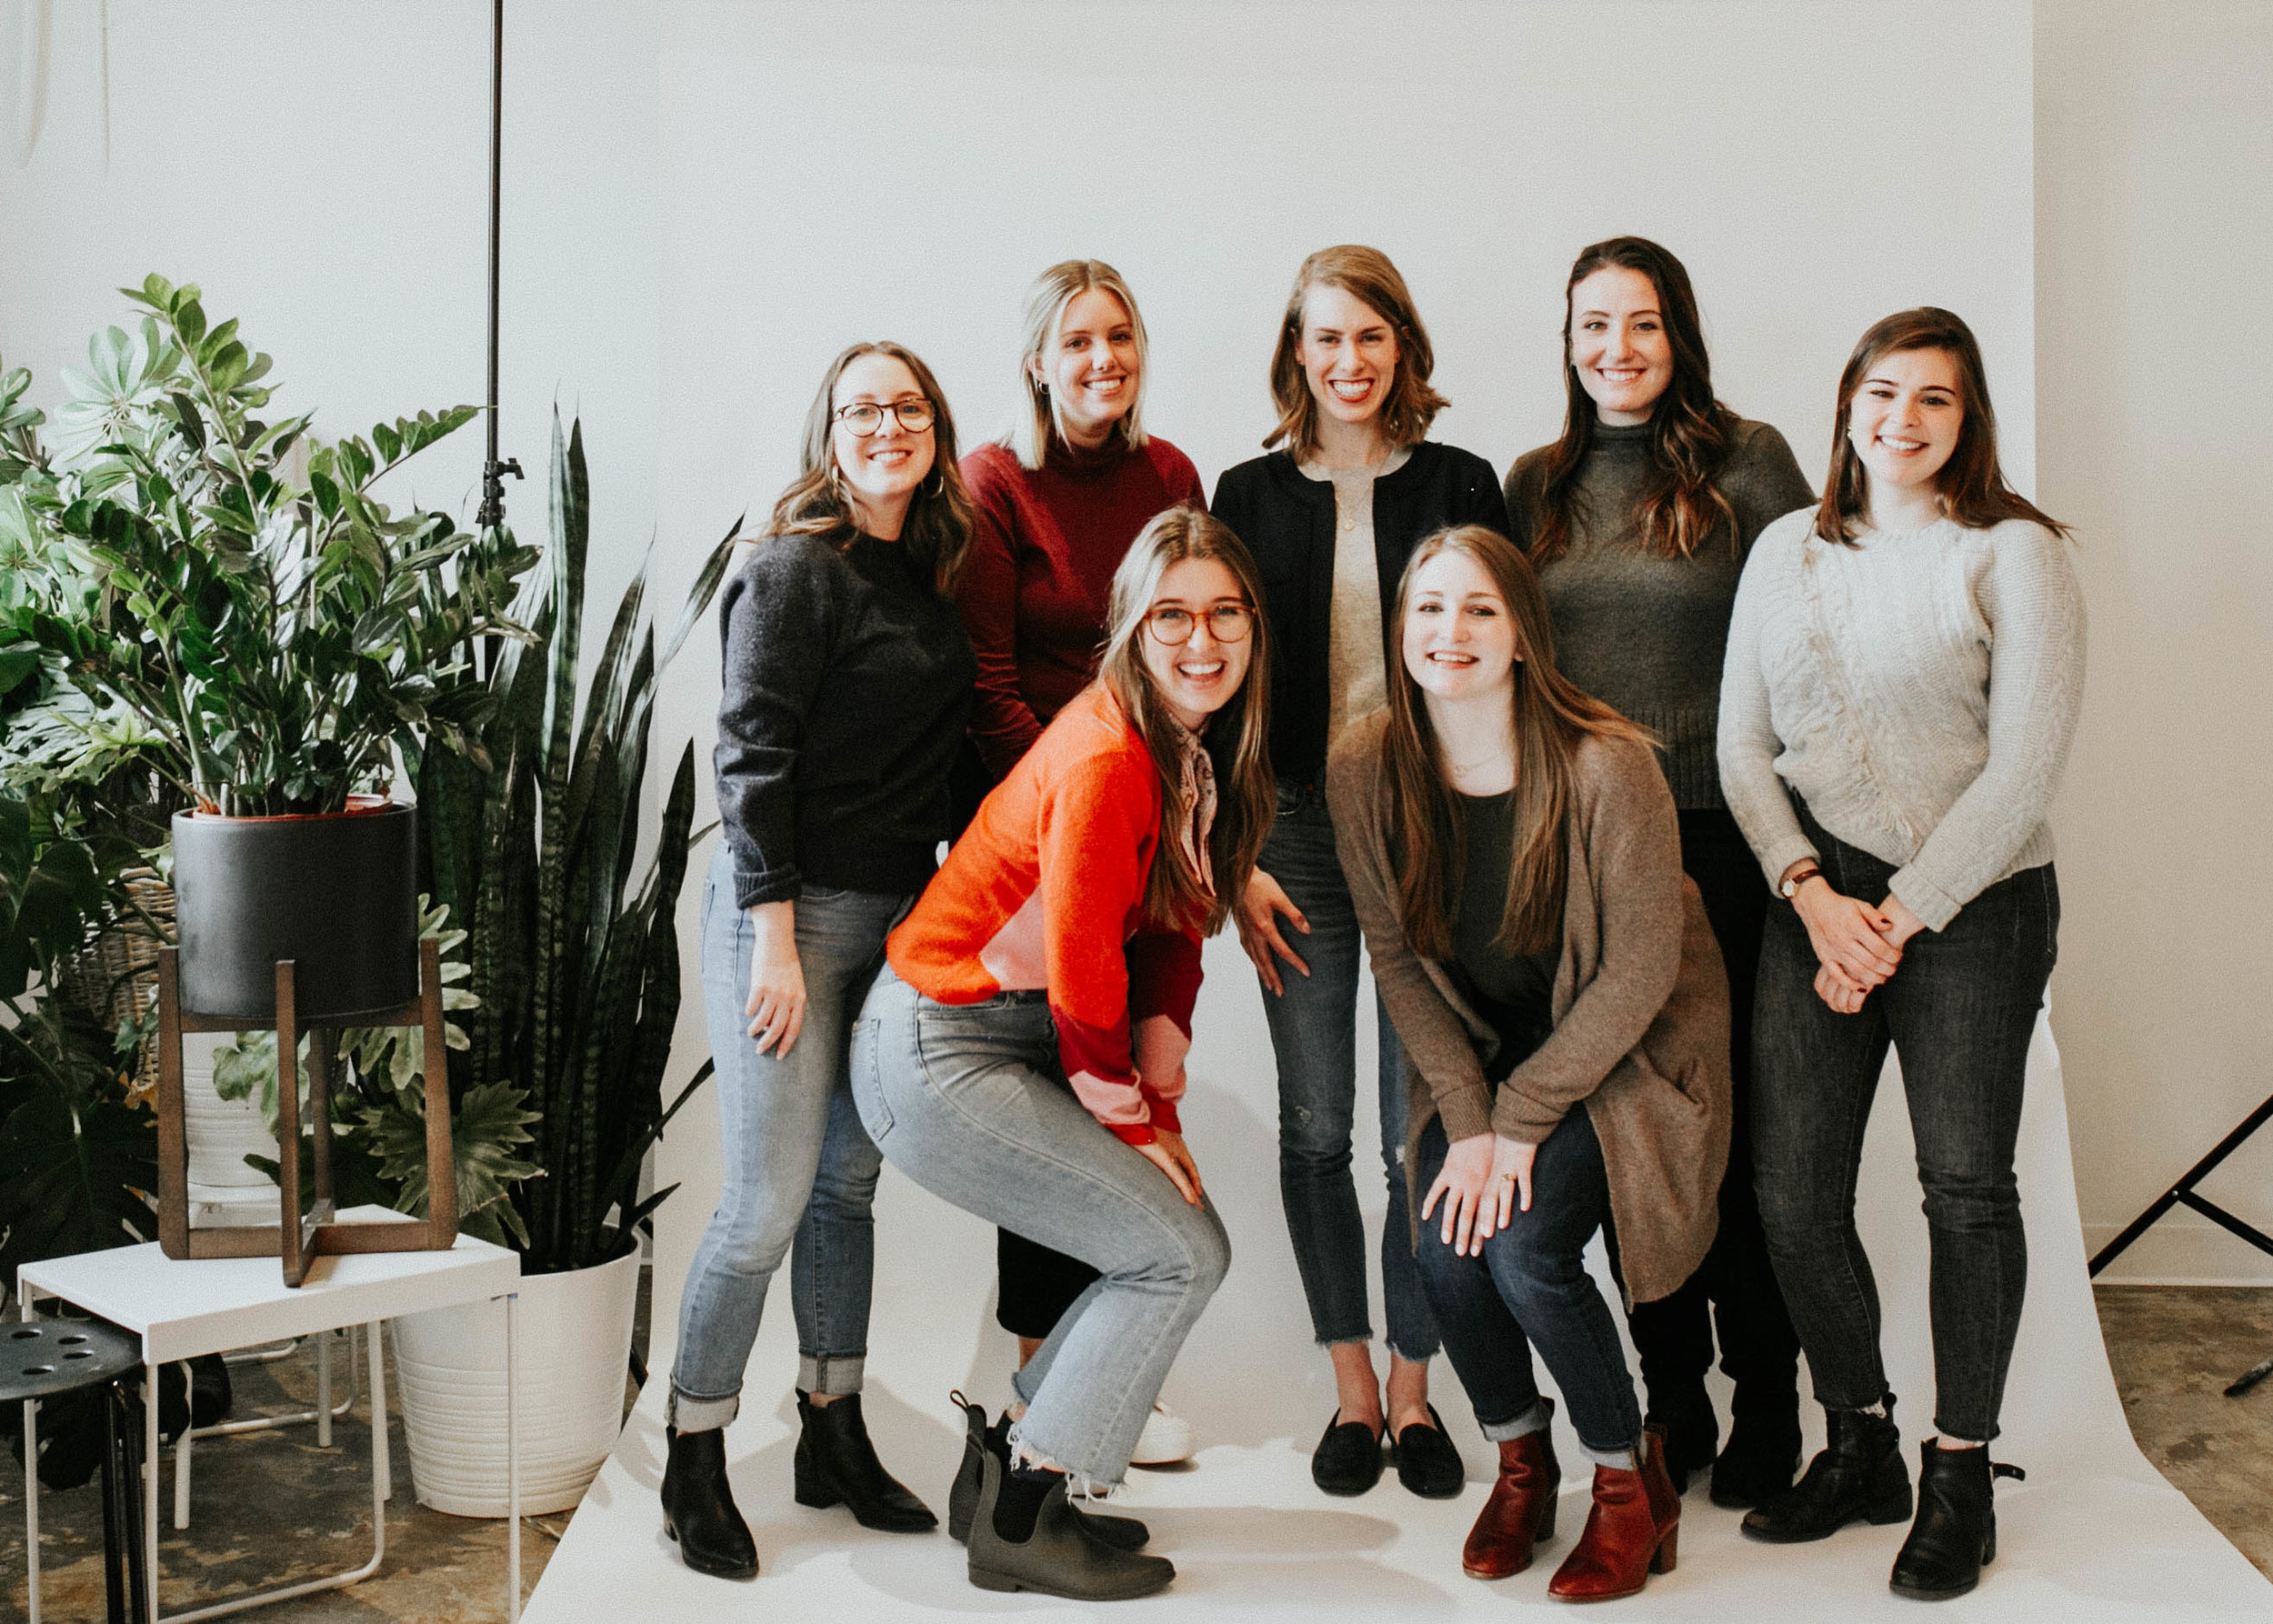 The RINGLET Team - Founded by Elise Crawford Gallagher, the RINGLET team is composed of experts in graphic design, event marketing, brand management, SEO, content creation and so much more.